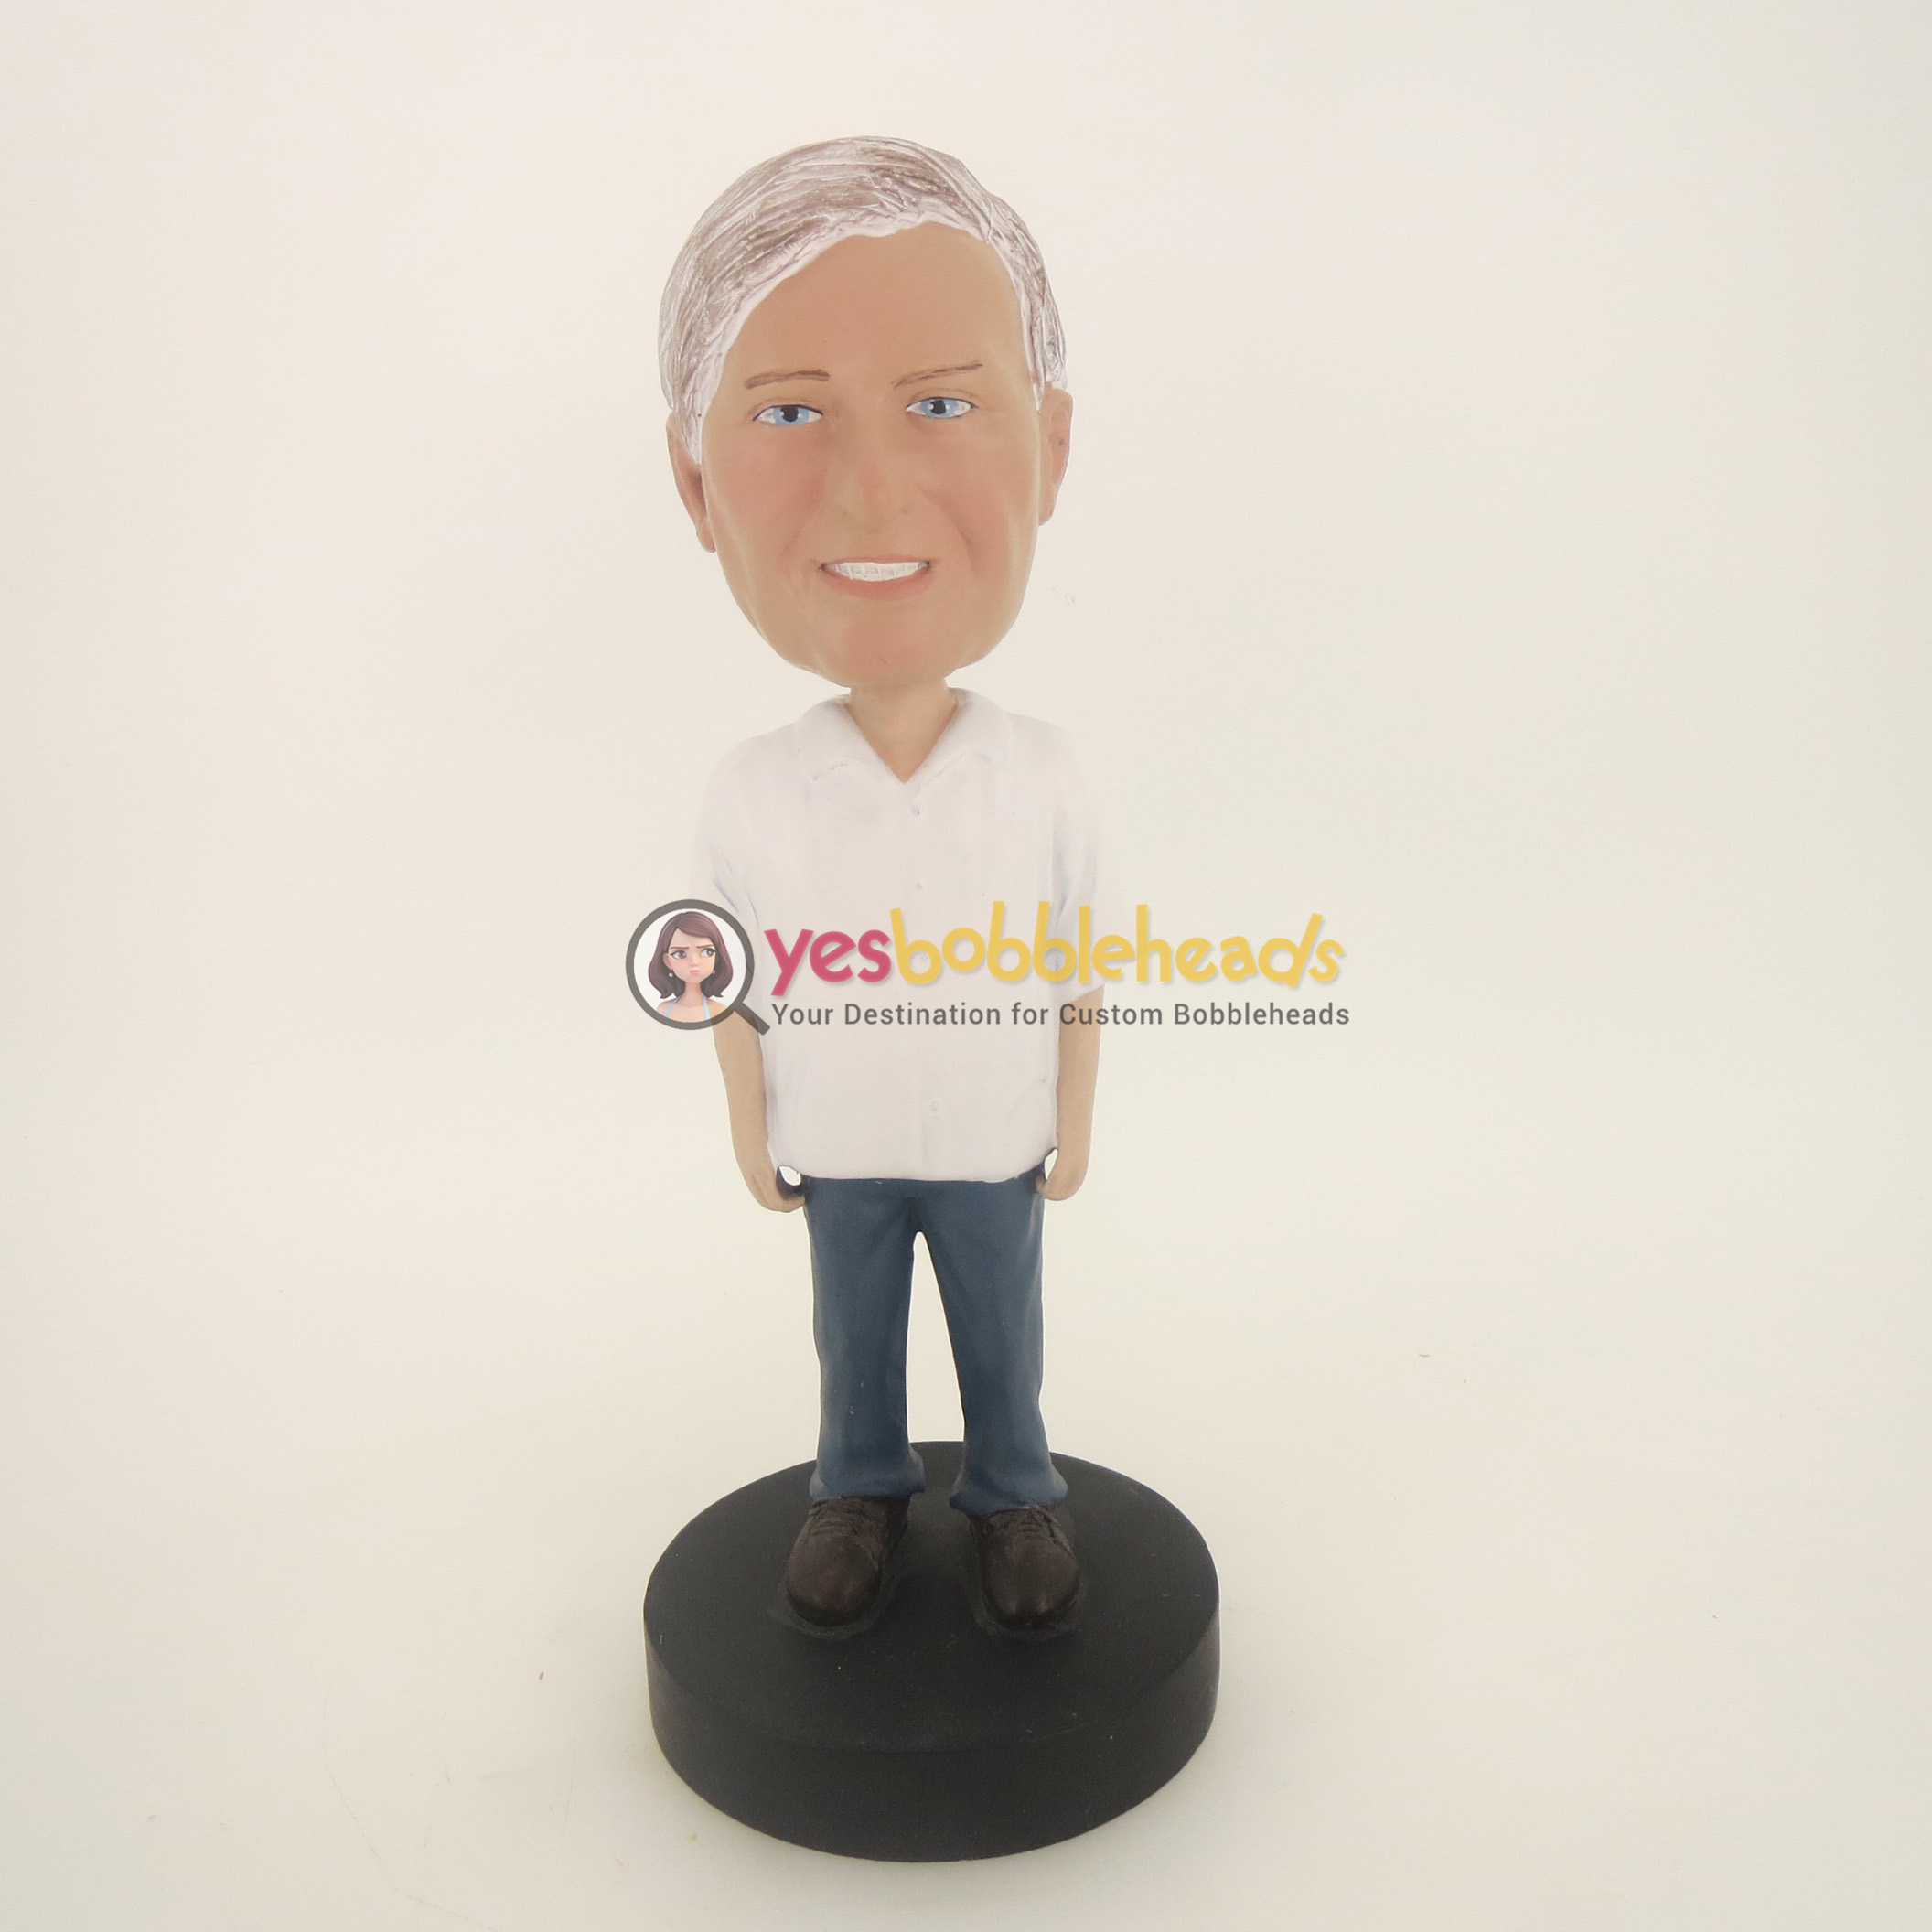 Picture of Custom Bobblehead Doll: Old Man In White TShirt